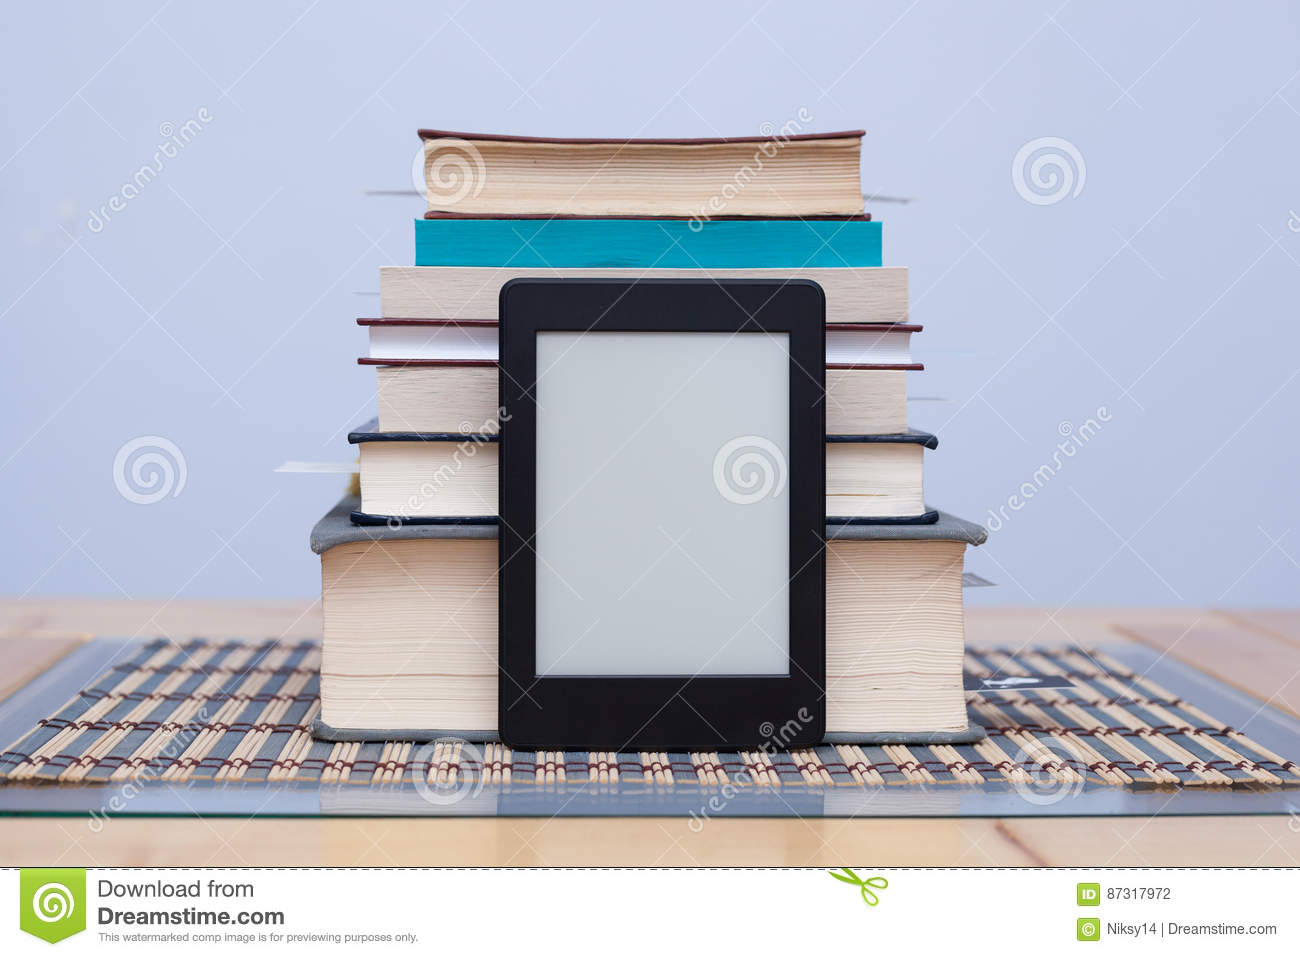 Blank eReader in front of a tower of books with bookmarks